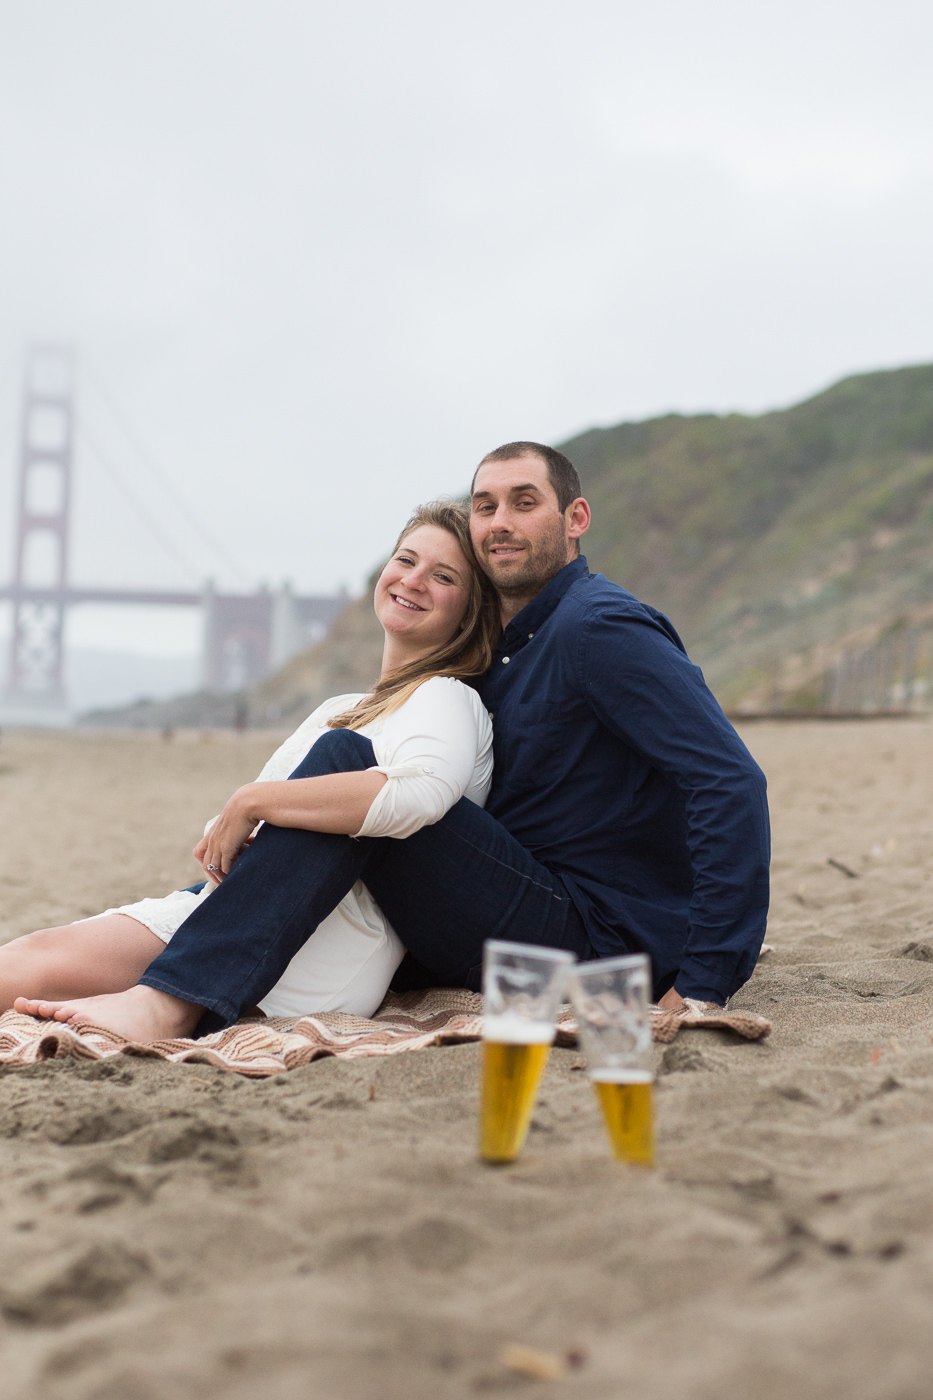 Baker-beach-san-francisco-california-engagement-session-12.jpg